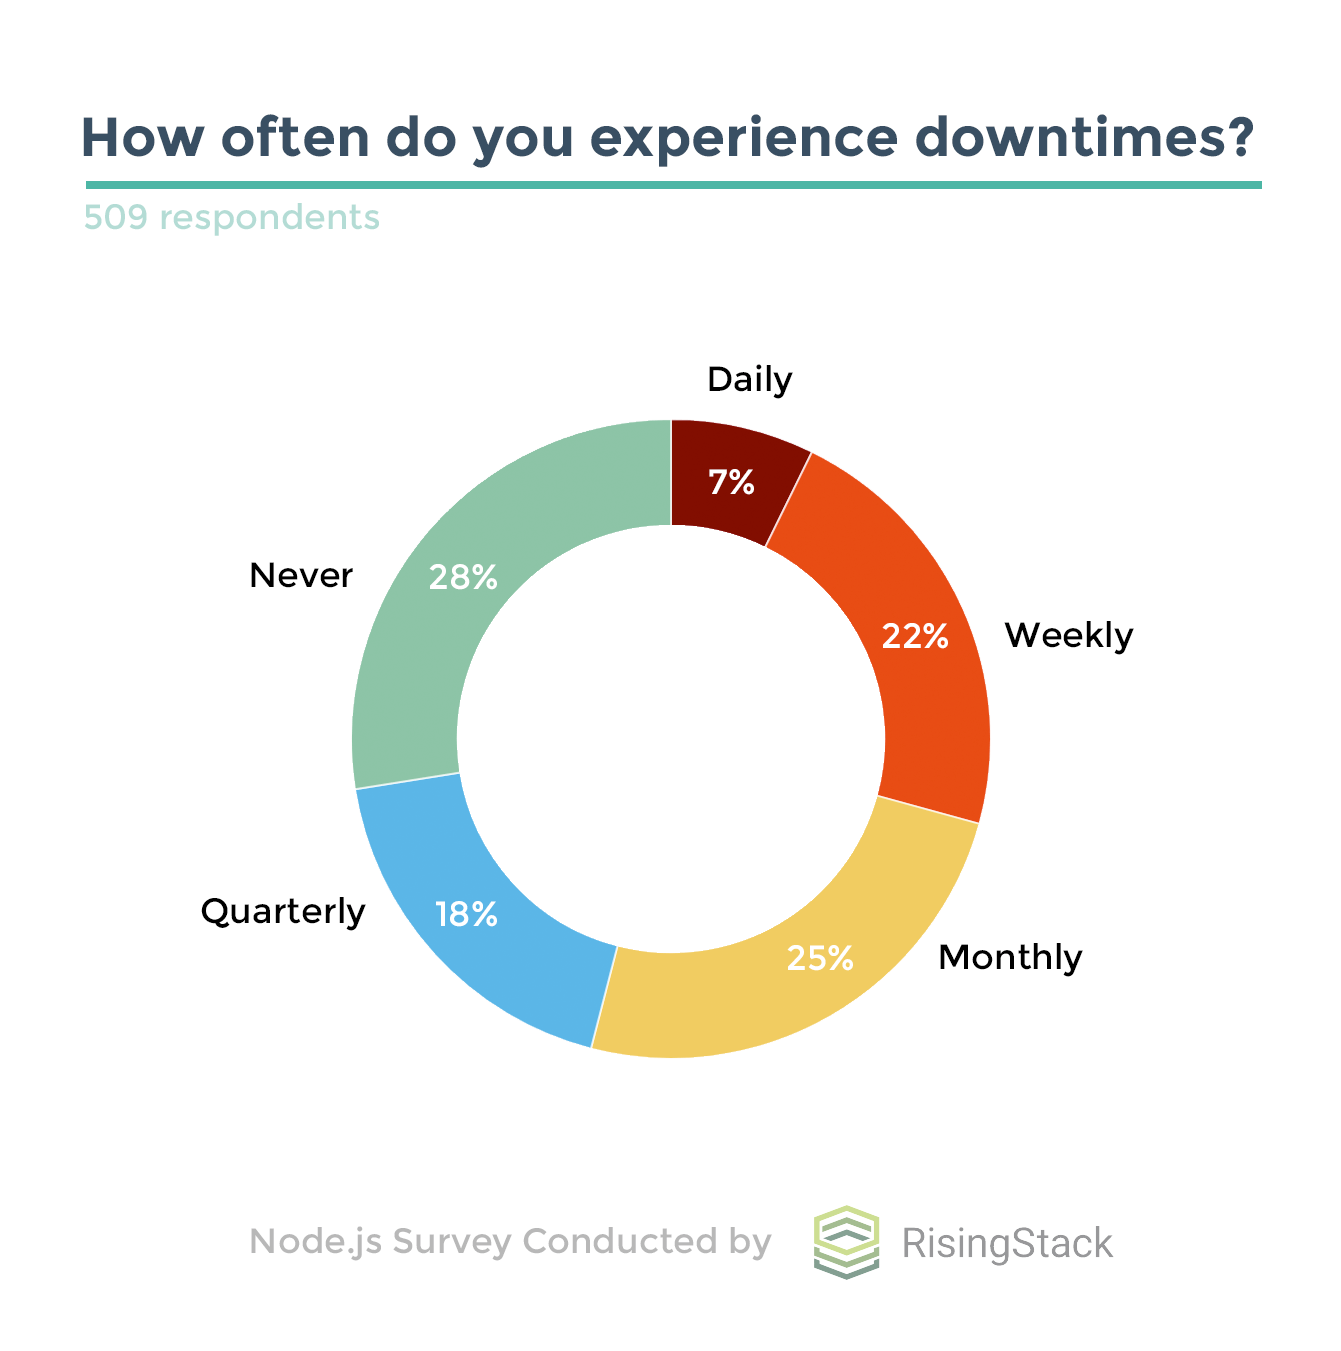 /survey-node-js-developers-struggle-with-debugging-downtimes-4c901f1ed8f4 feature image